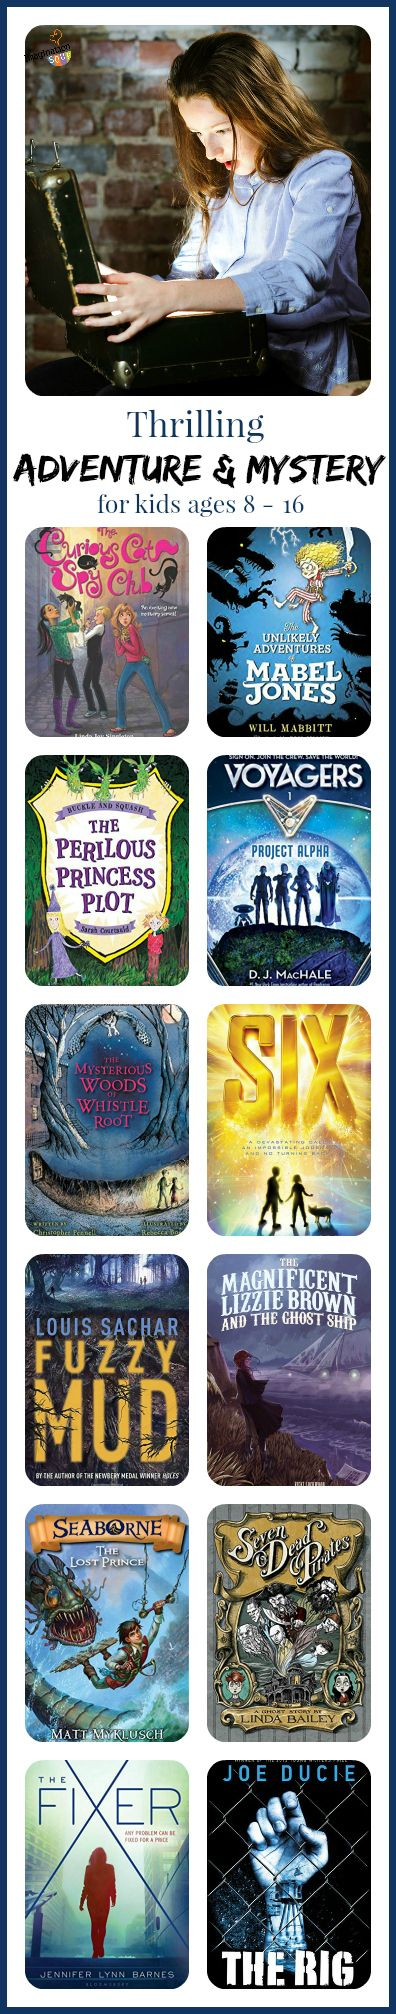 thrilling new adventure and mystery chapter book recommendations for kids